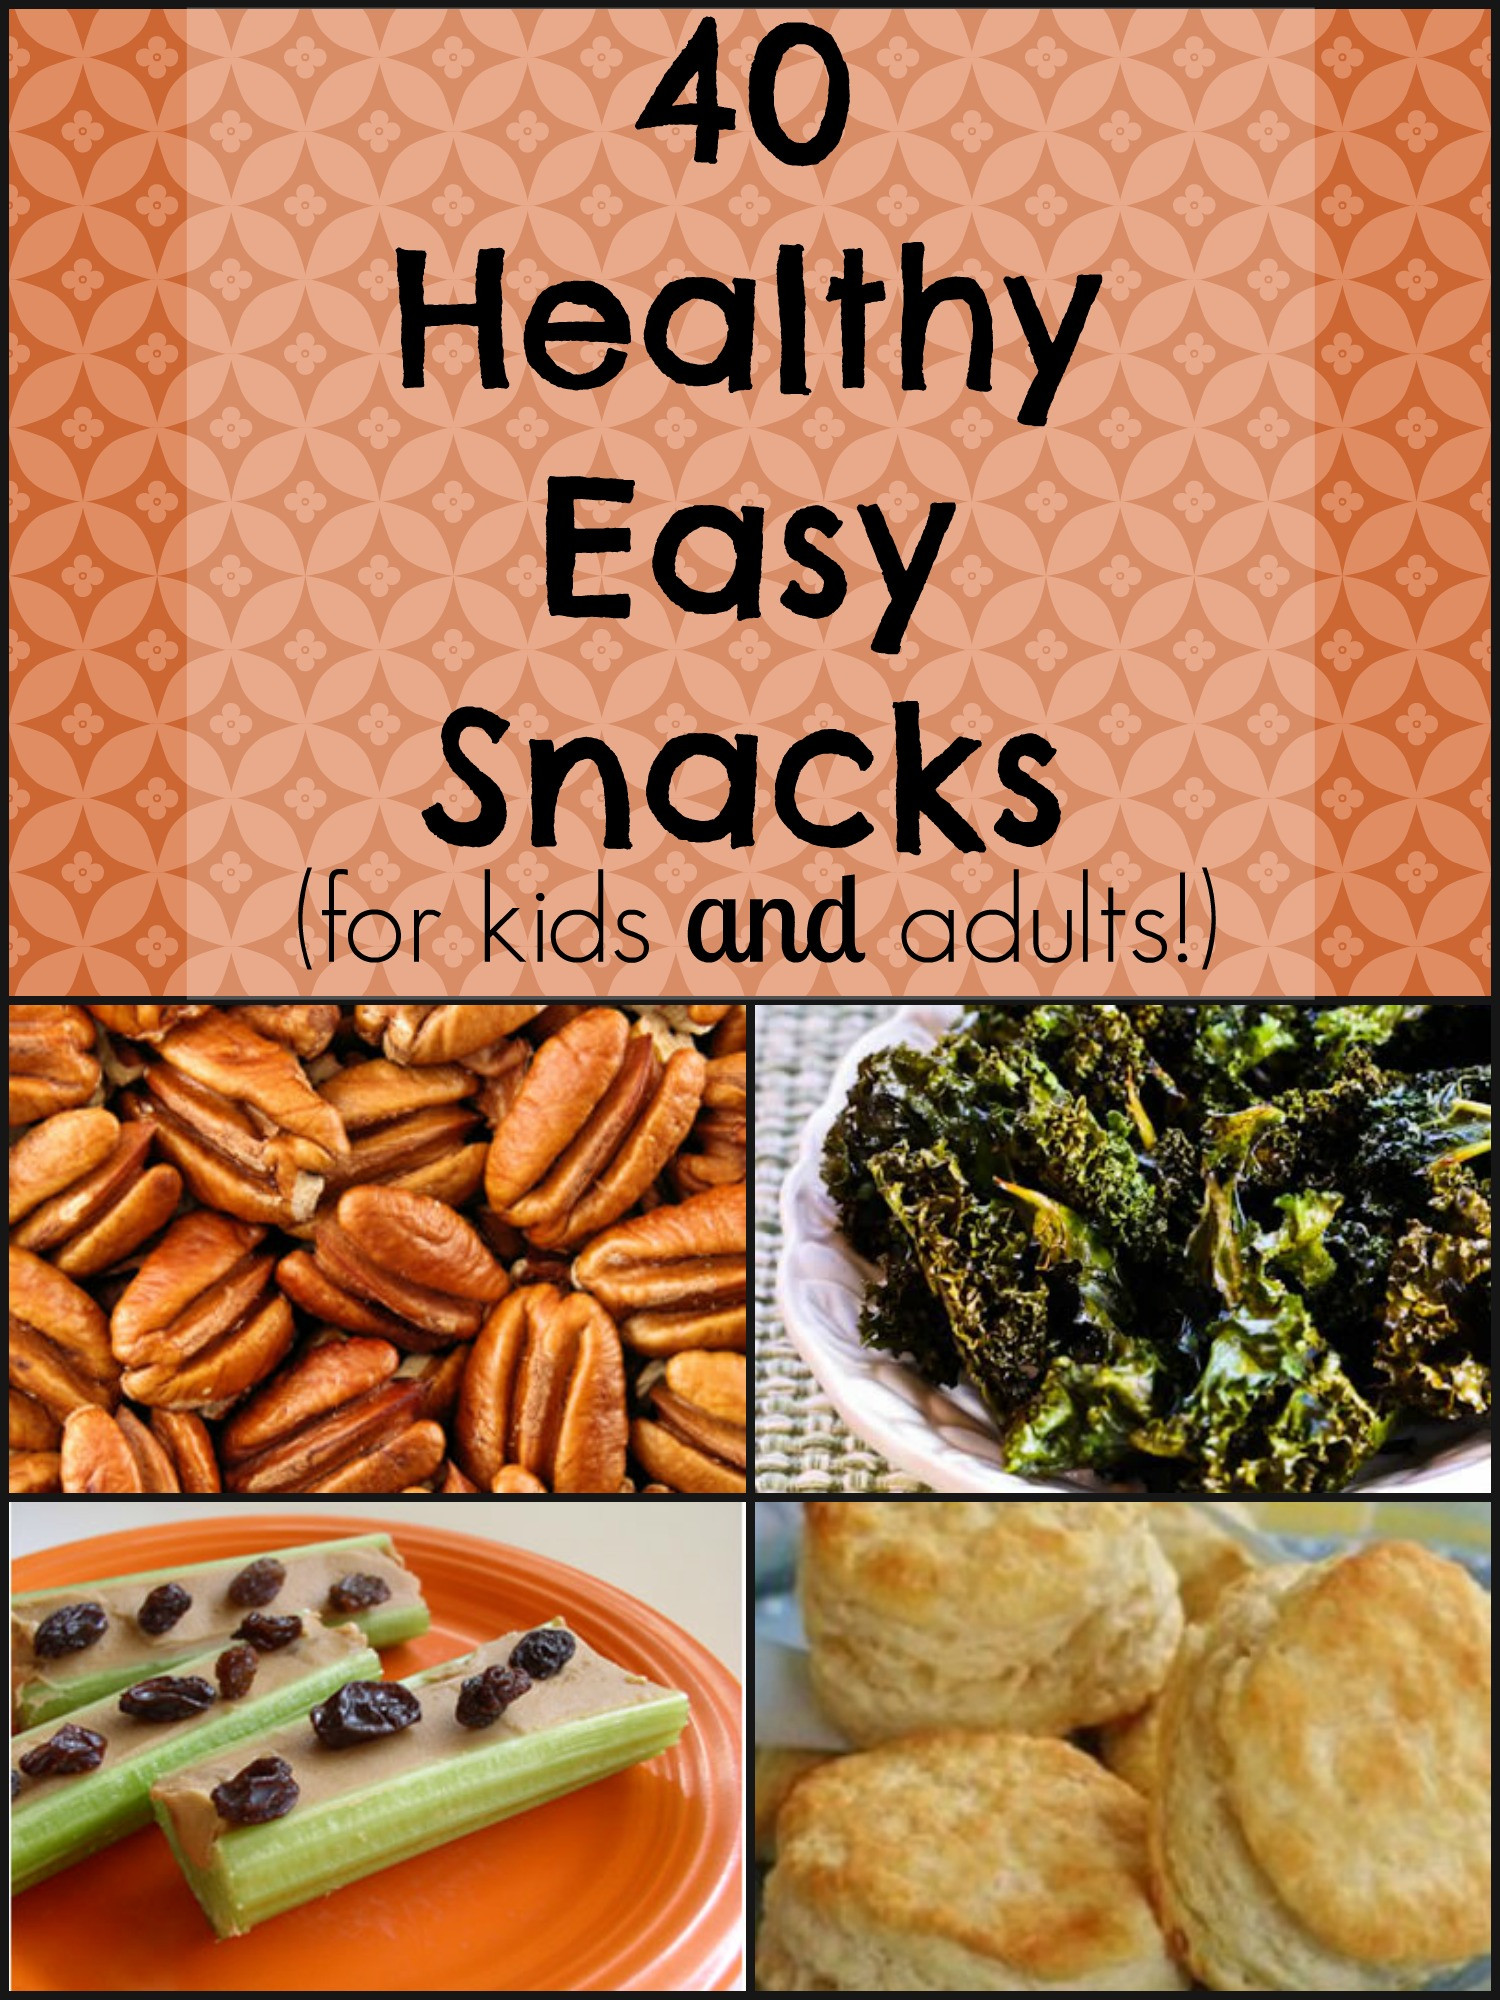 Healthy And Easy Snacks  40 Healthy Easy Snacks for kids and adults